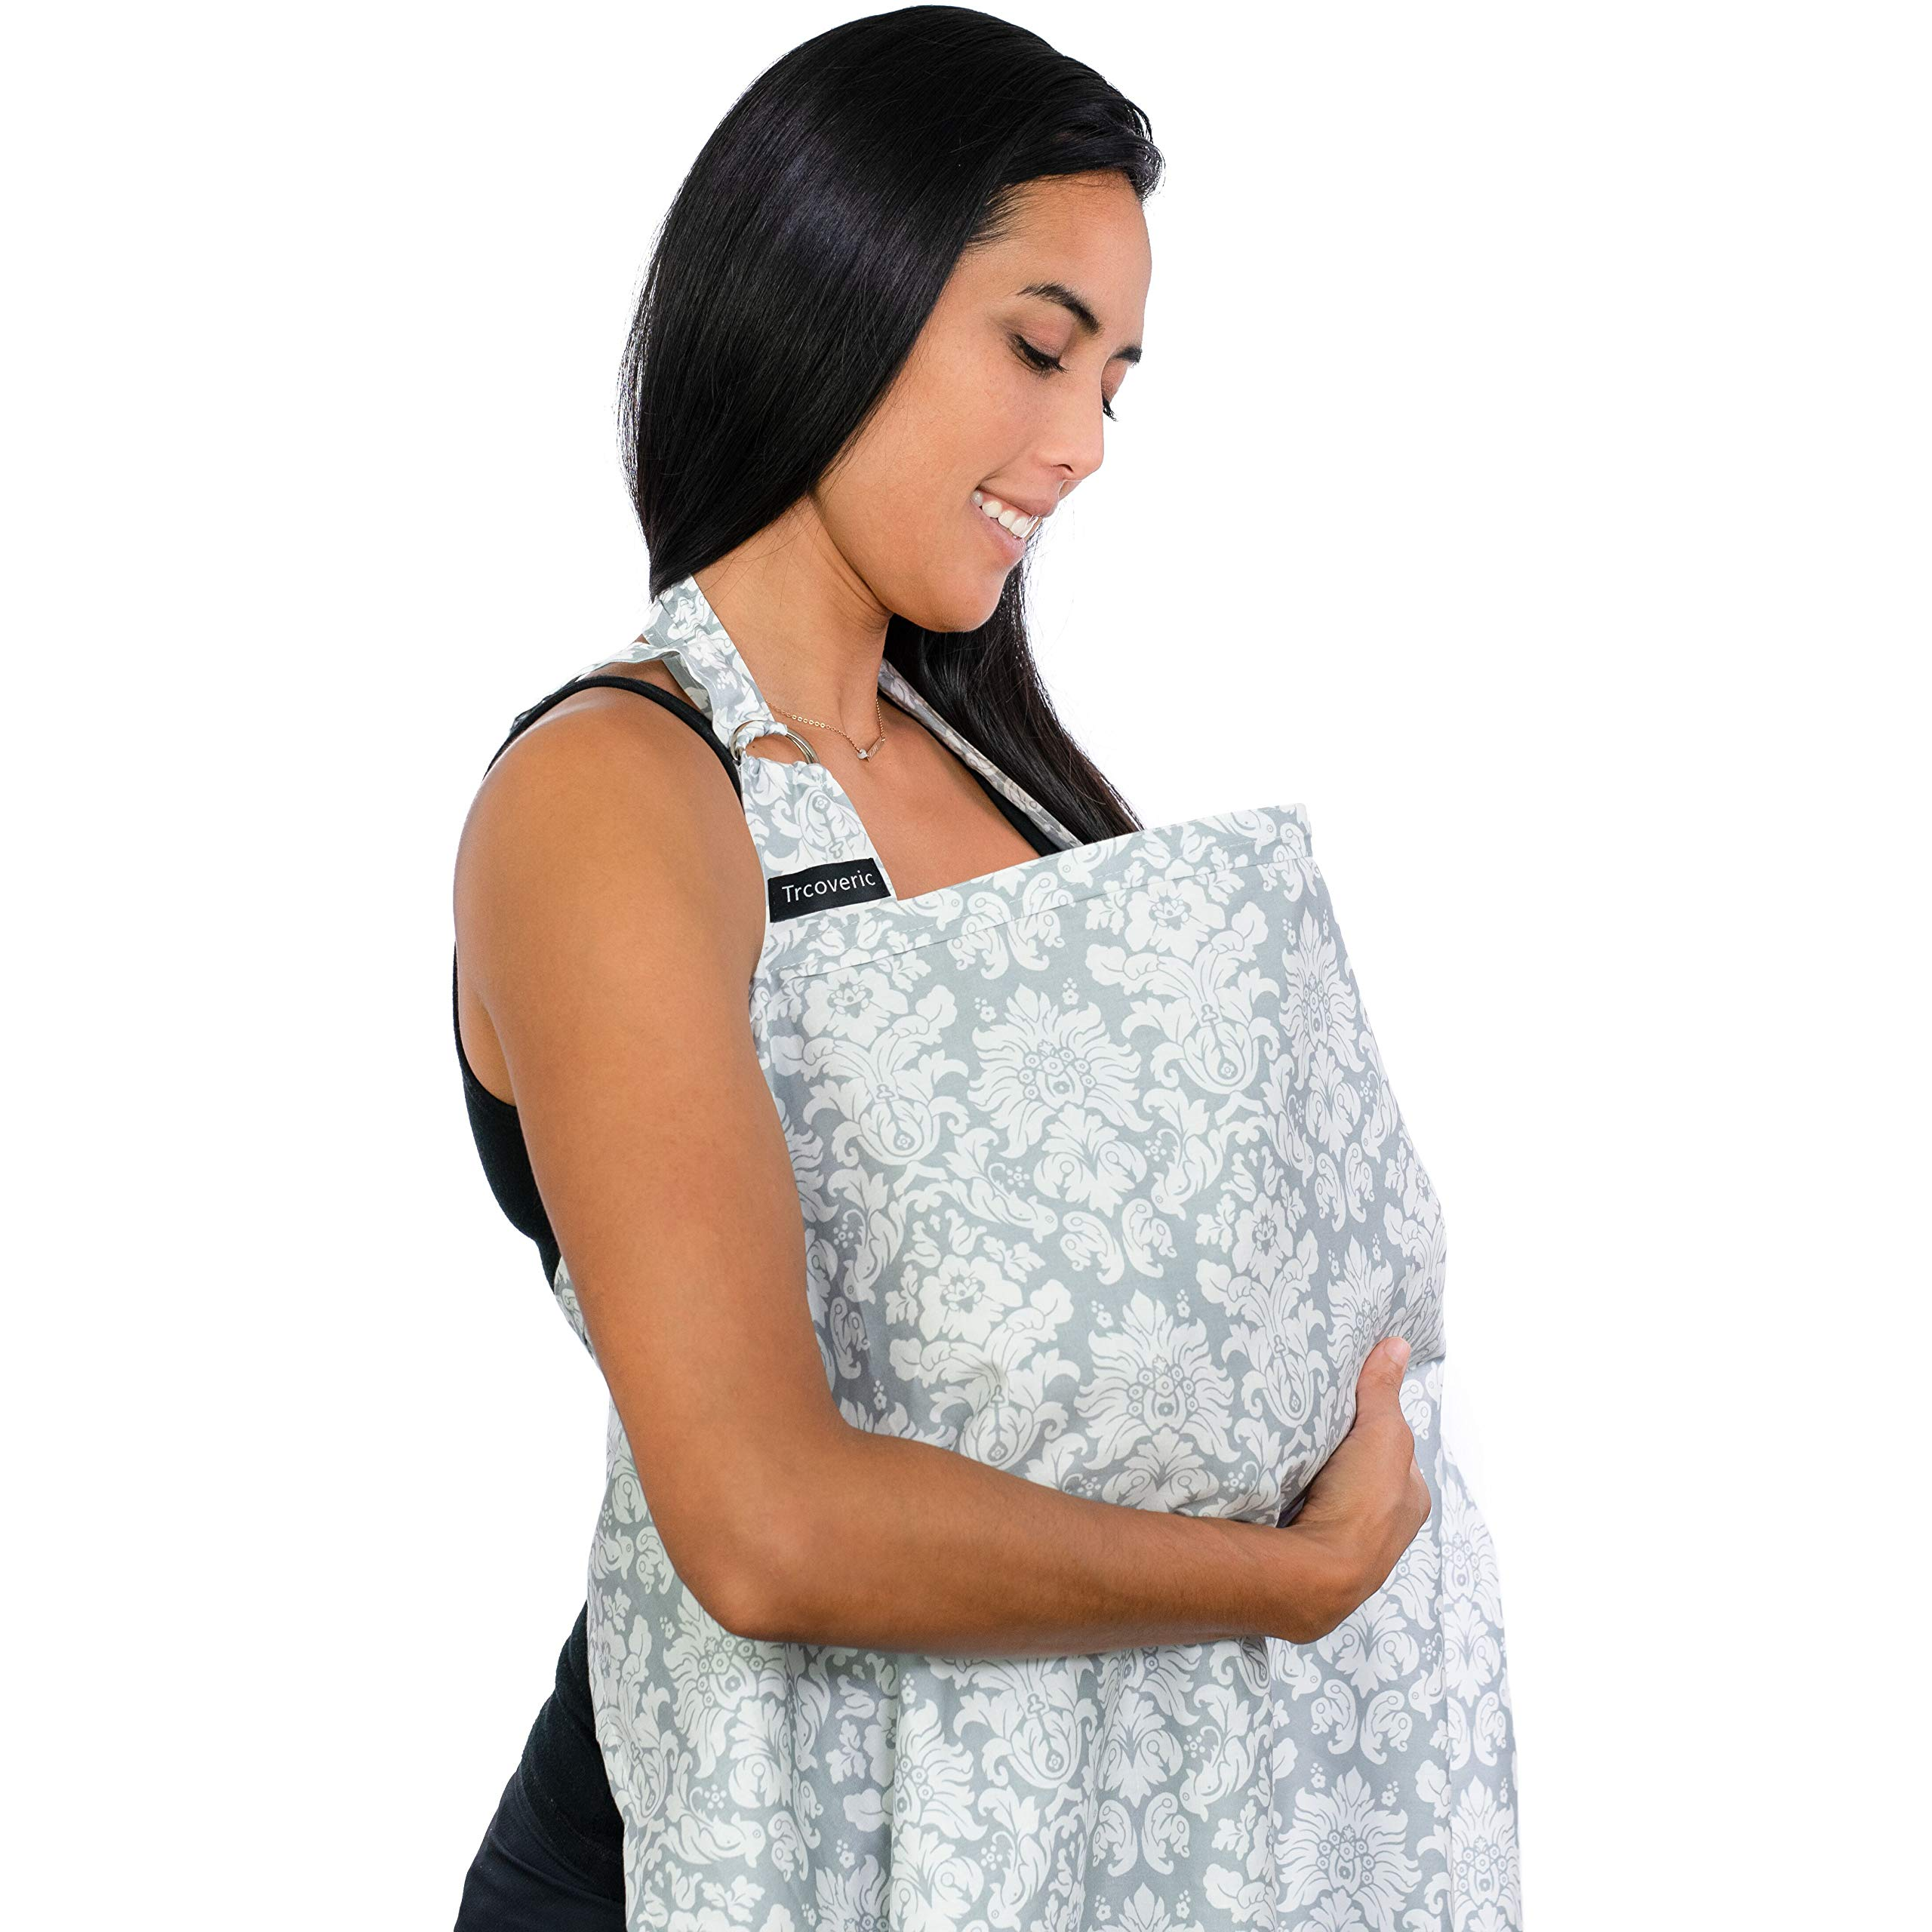 Breastfeeding Nursing Cover, Trcoveric Lightweight Breathable Cotton Privacy Feeding Cover, Nursing Apron for Breastfeeding - Full Coverage, Adjustable Strap, Stylish and Elegant by Trcoveric